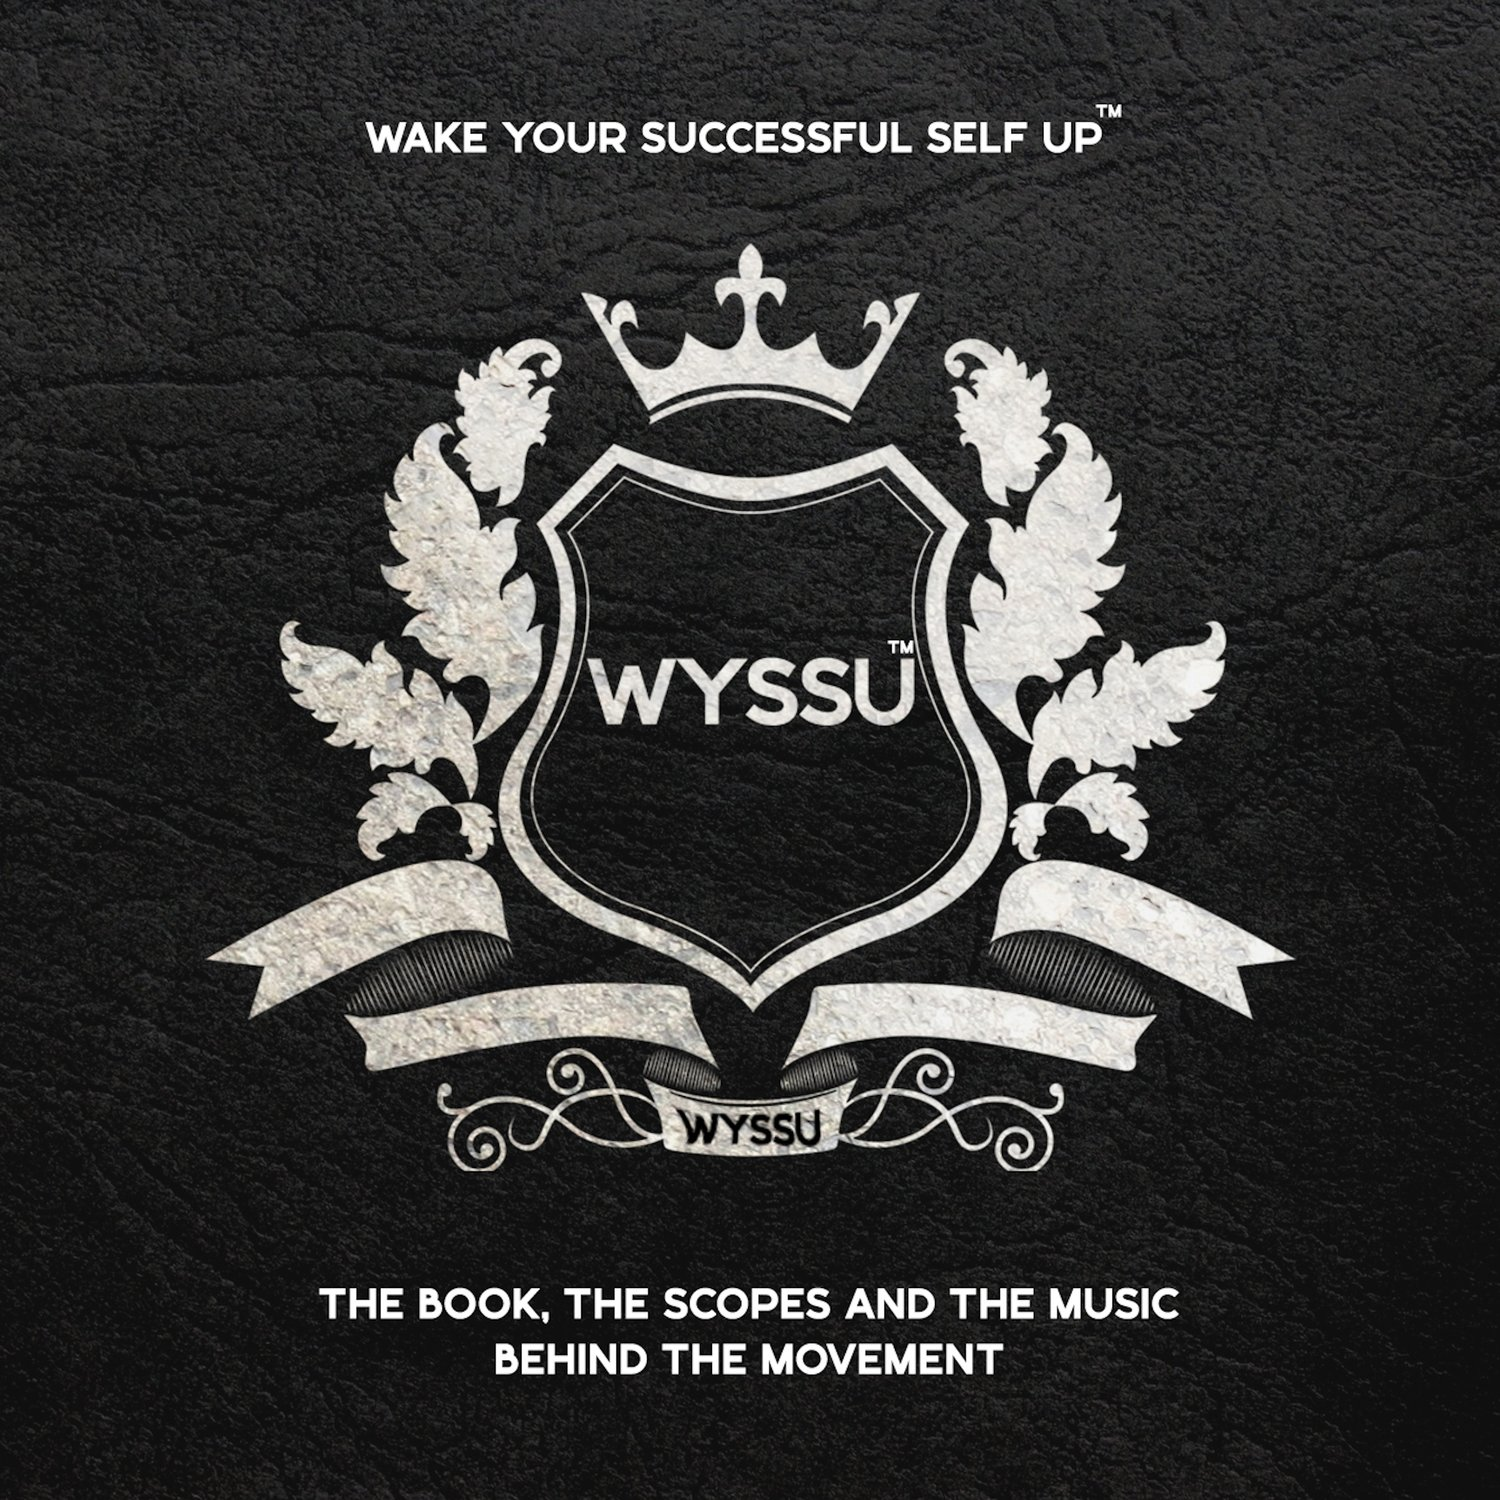 (DIGITAL DOWNLOAD) WYSSU™️ Soundtrack: The Book, The Scopes, The Music Behind The Movement